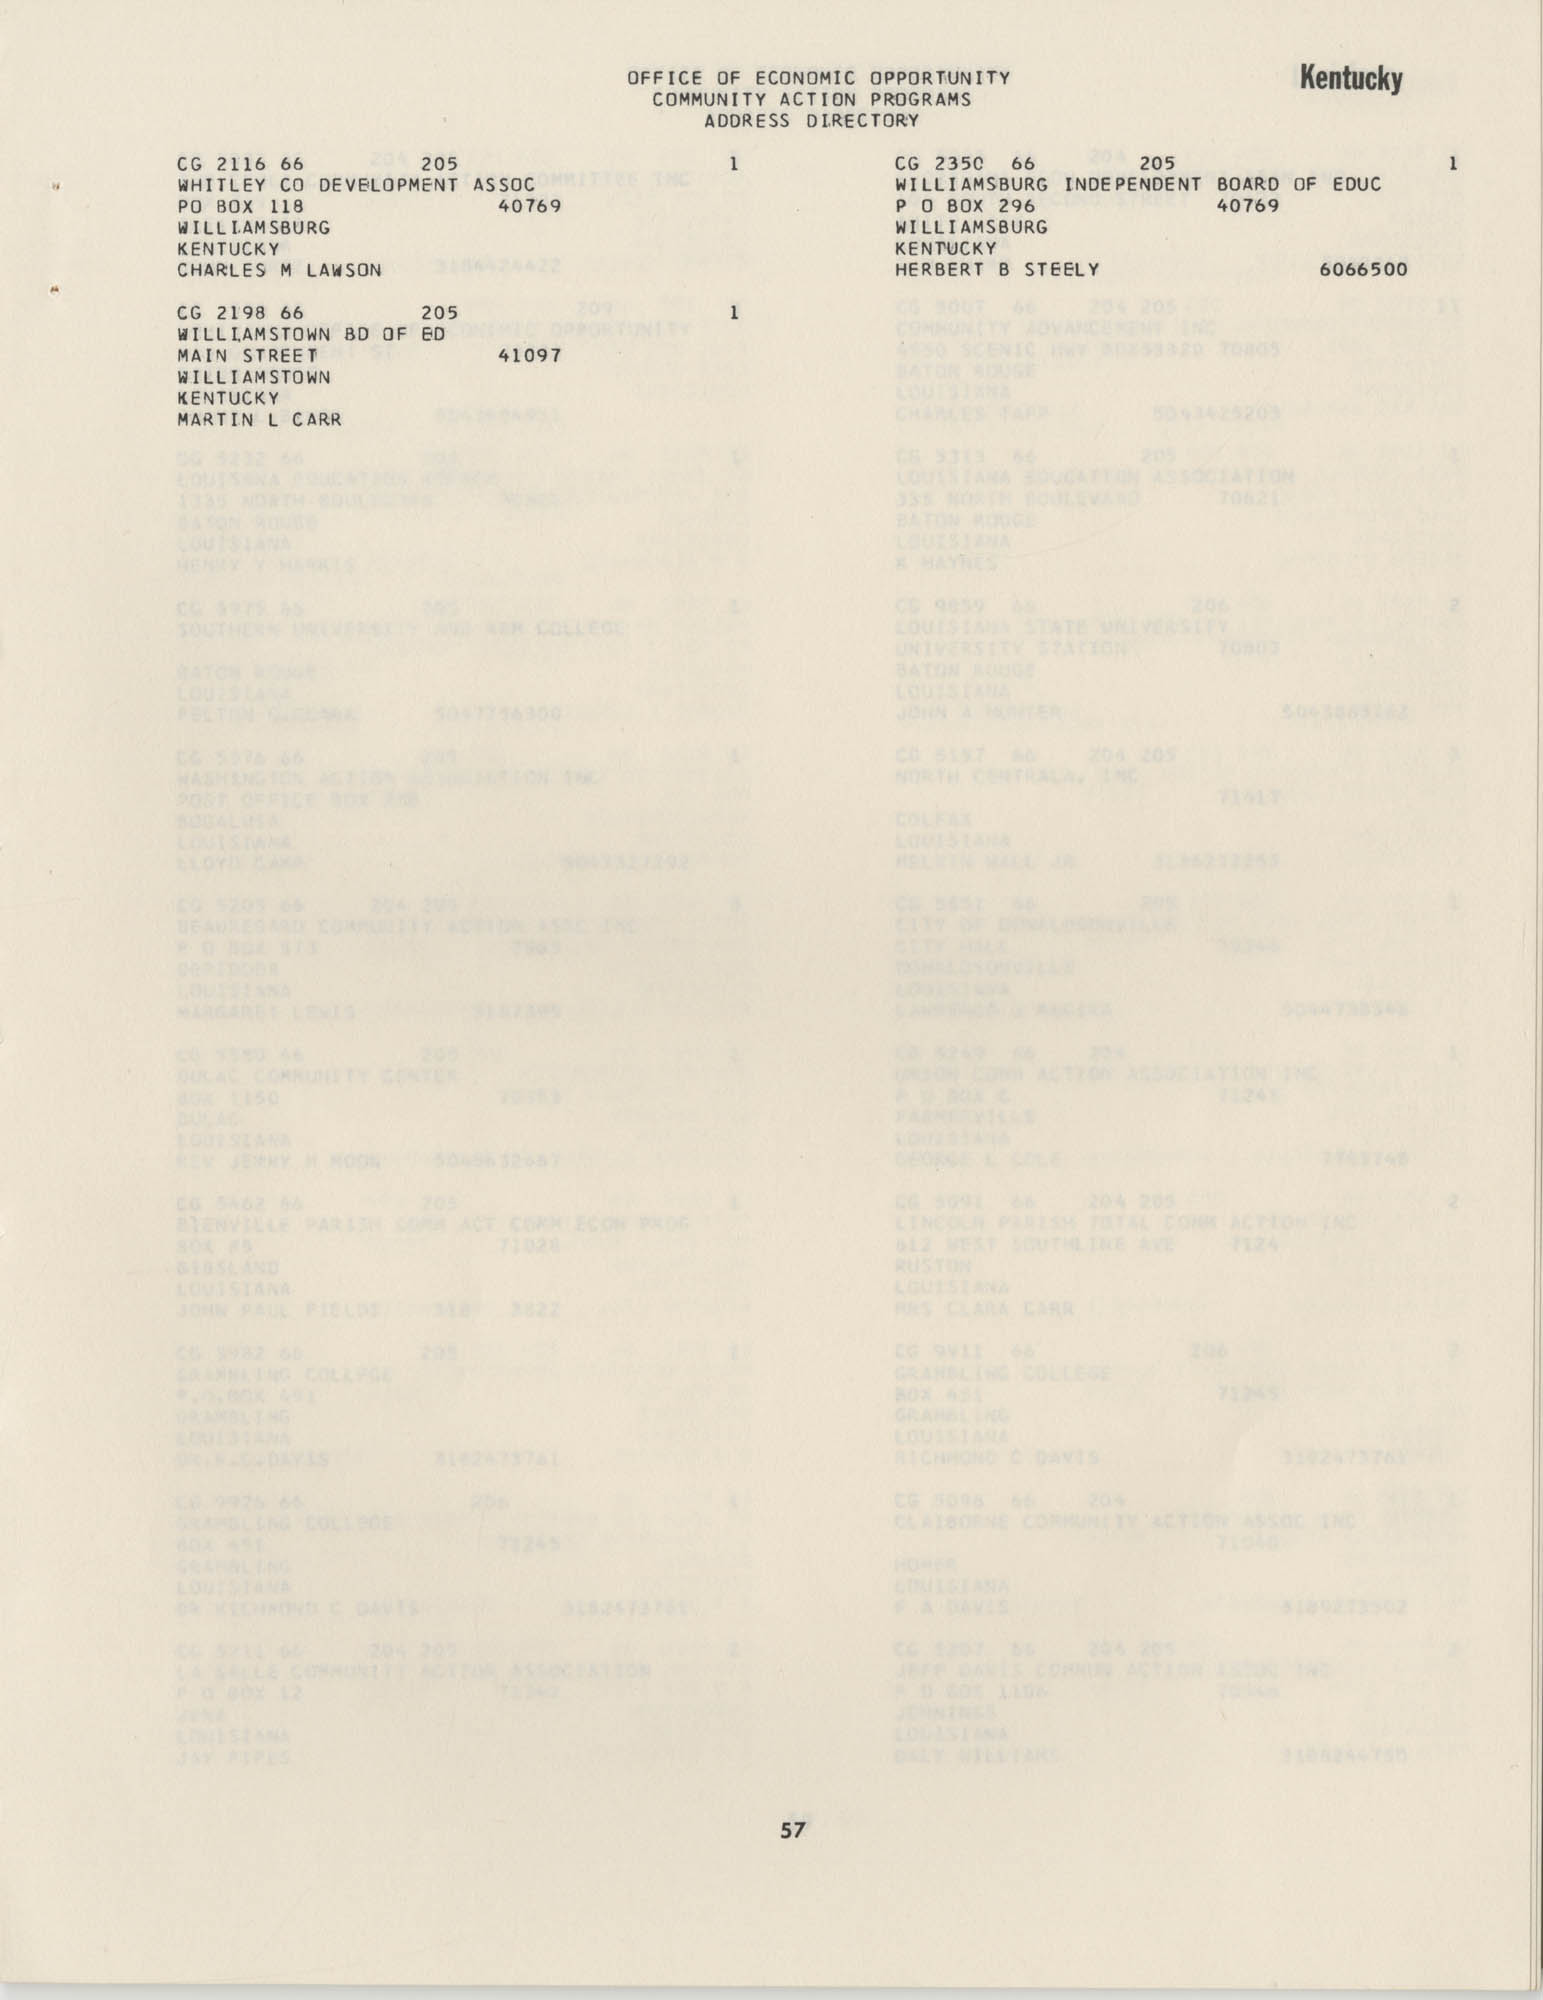 Community Action Programs Directory, June 15, 1966, Page 57